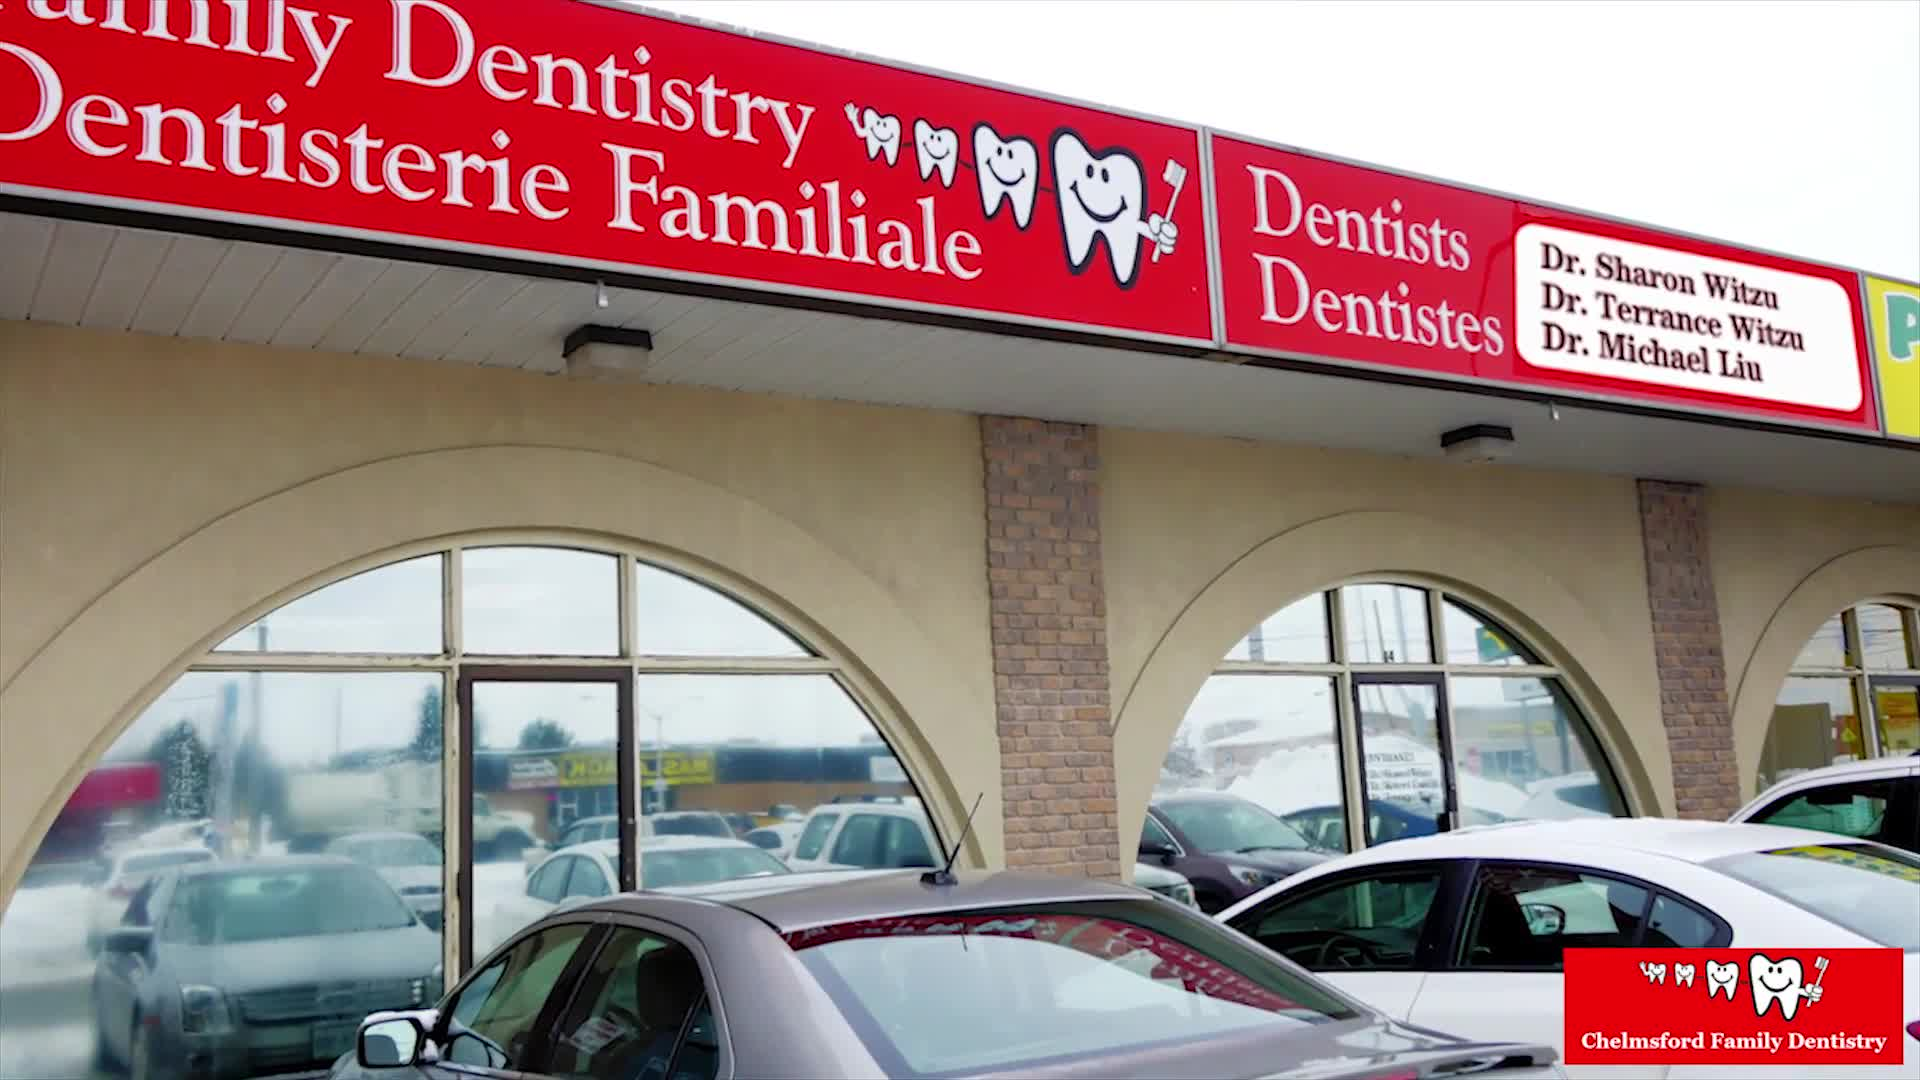 Chelmsford Family Dentistry - Dentists - 7058553200